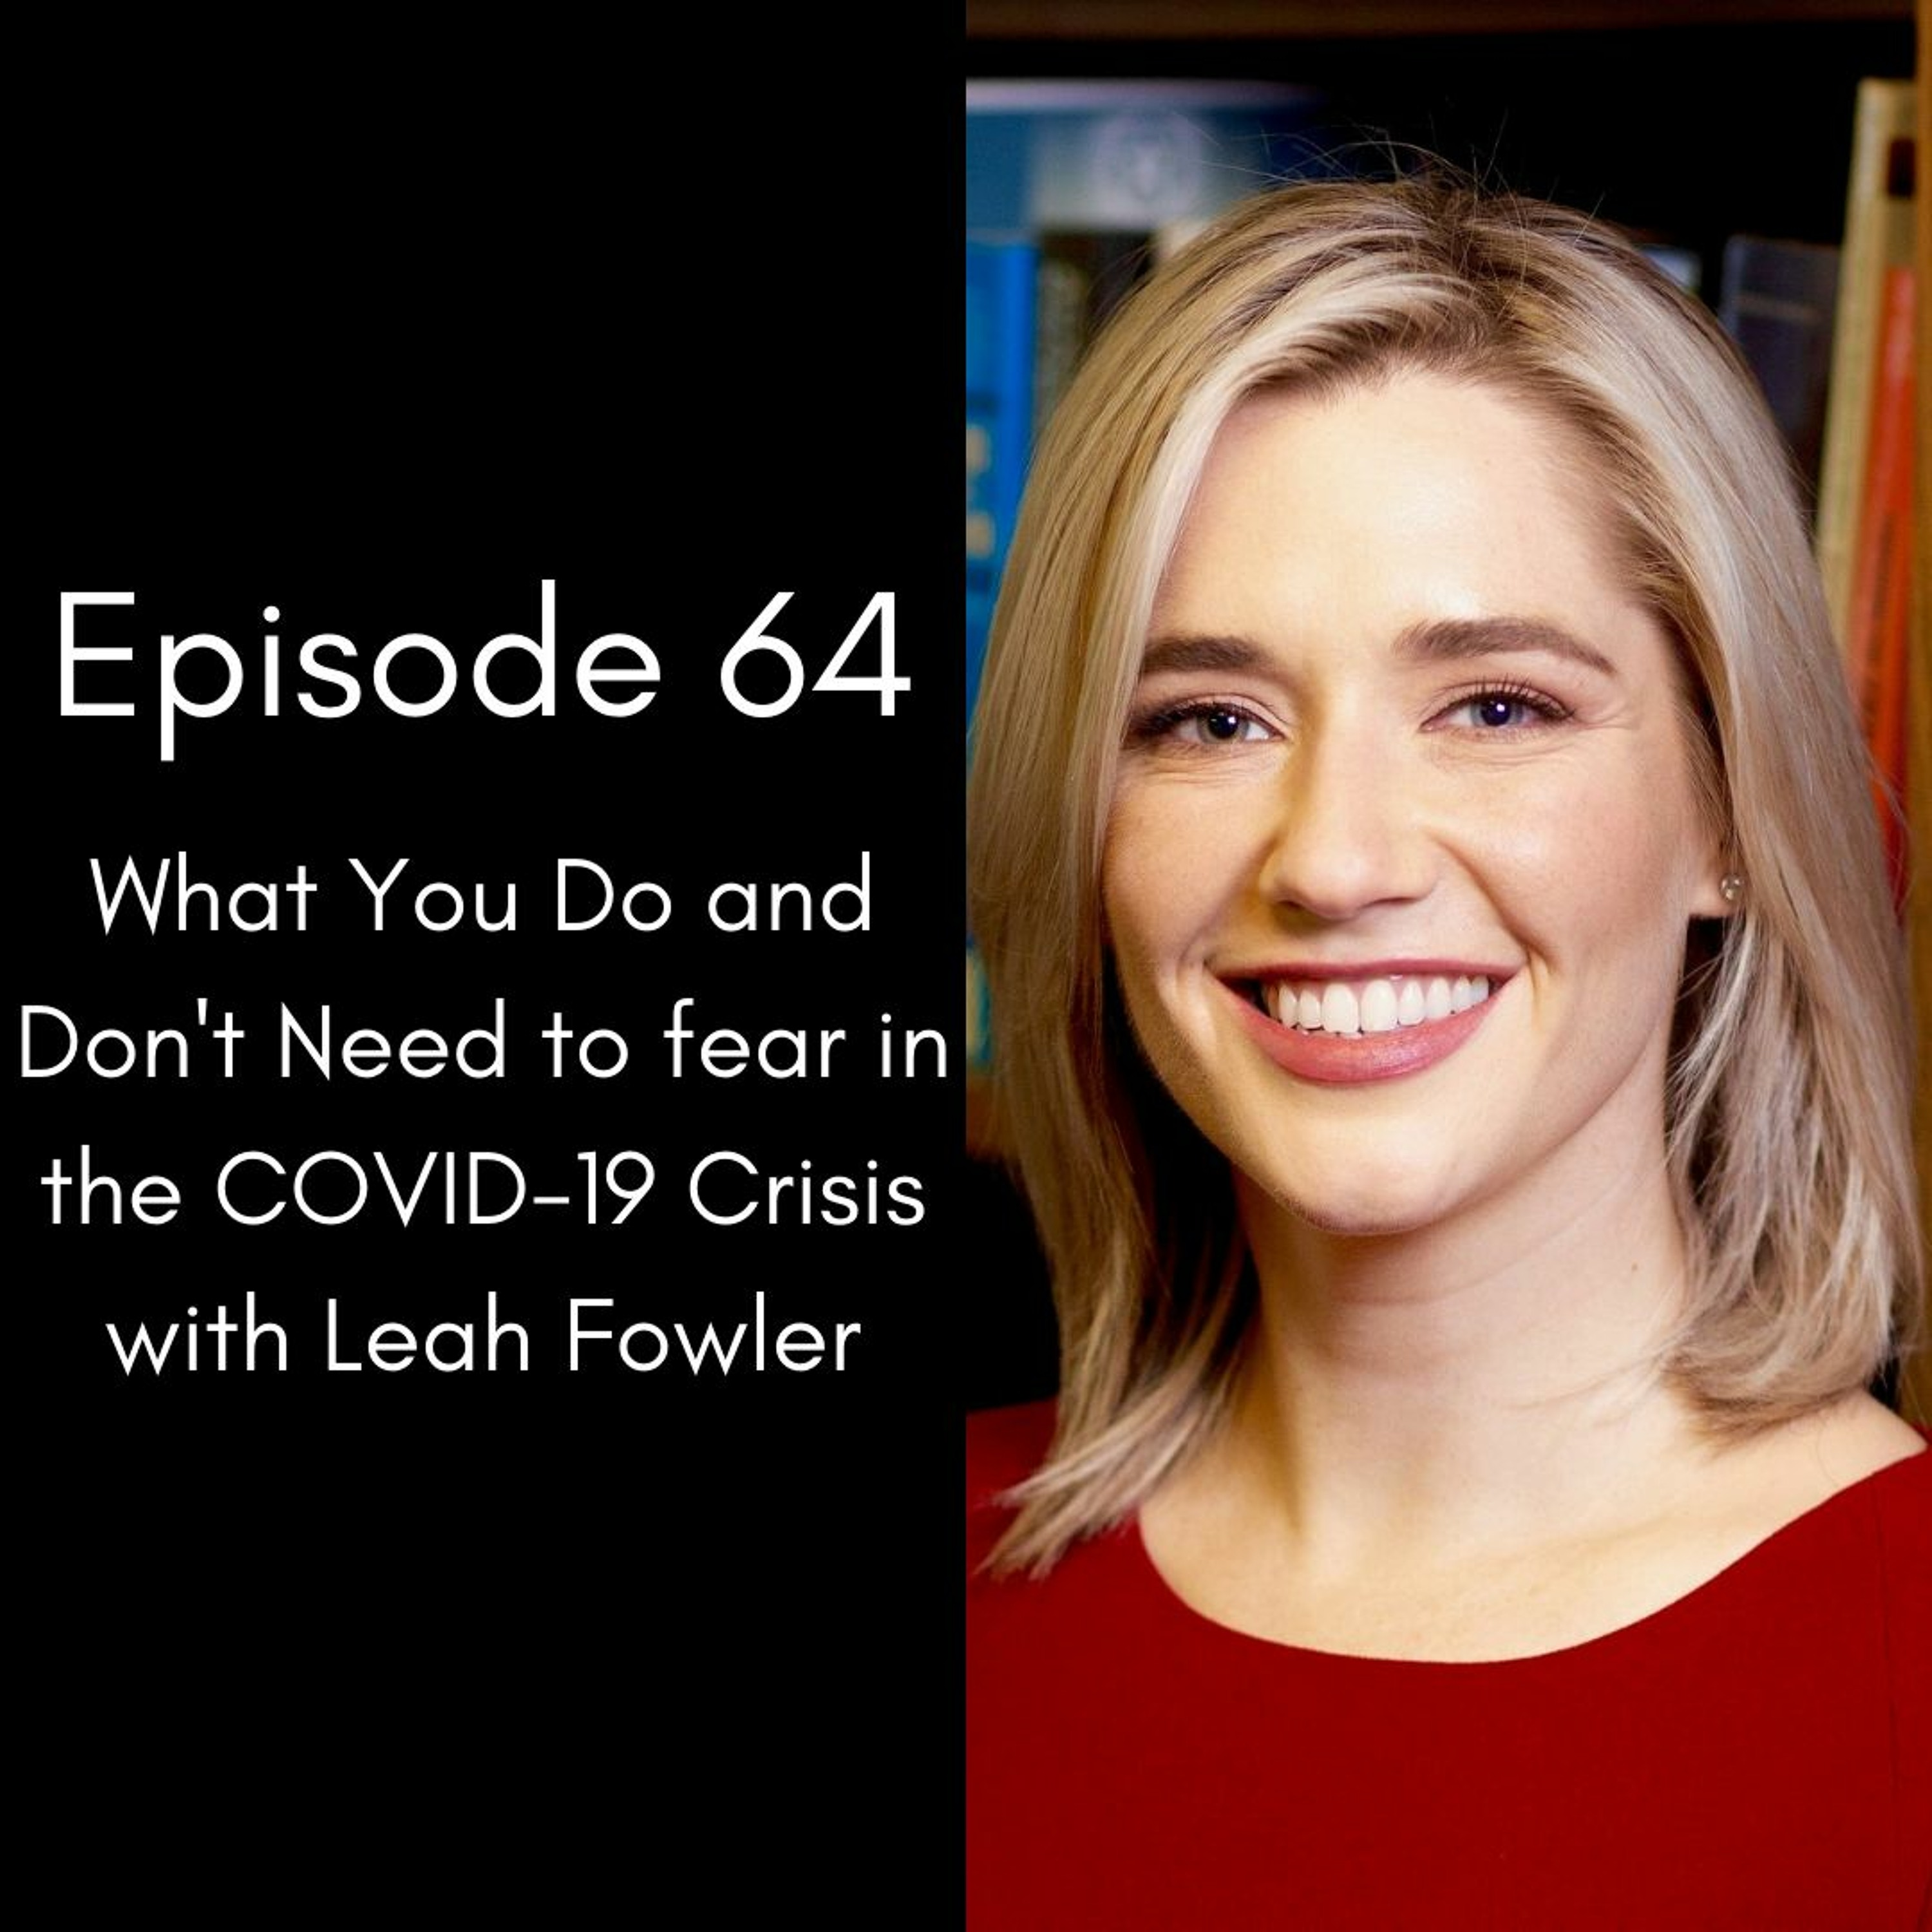 Episode 64: What You Do and Don't Need to Fear in the COVID-19 Crisis